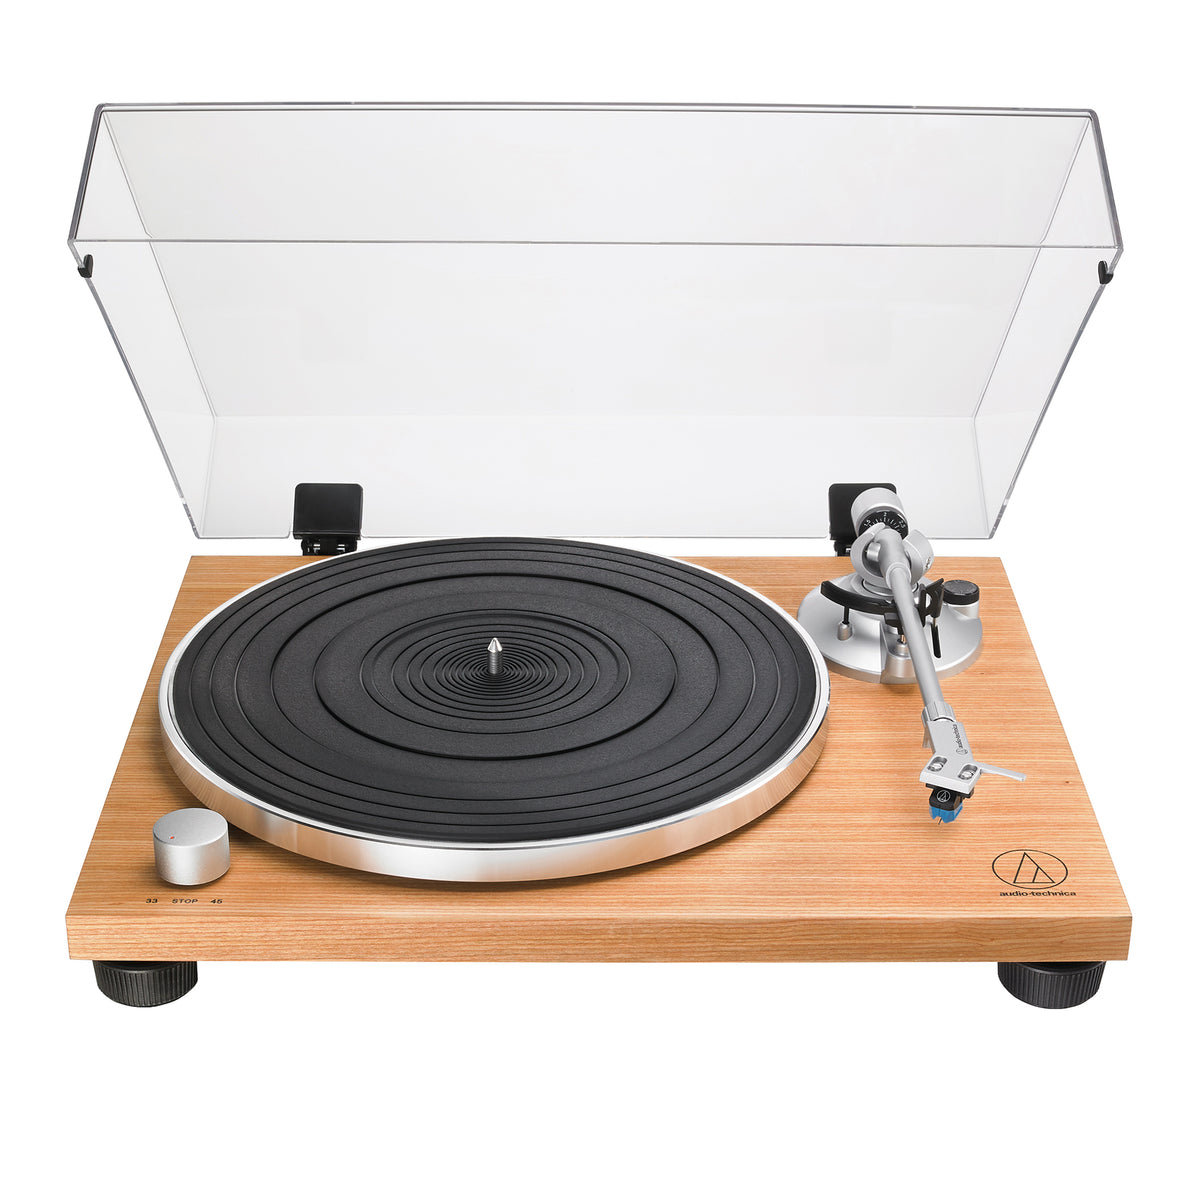 Audio Technica: AT-LPW30TK Manual Belt Drive Turntable - Teak